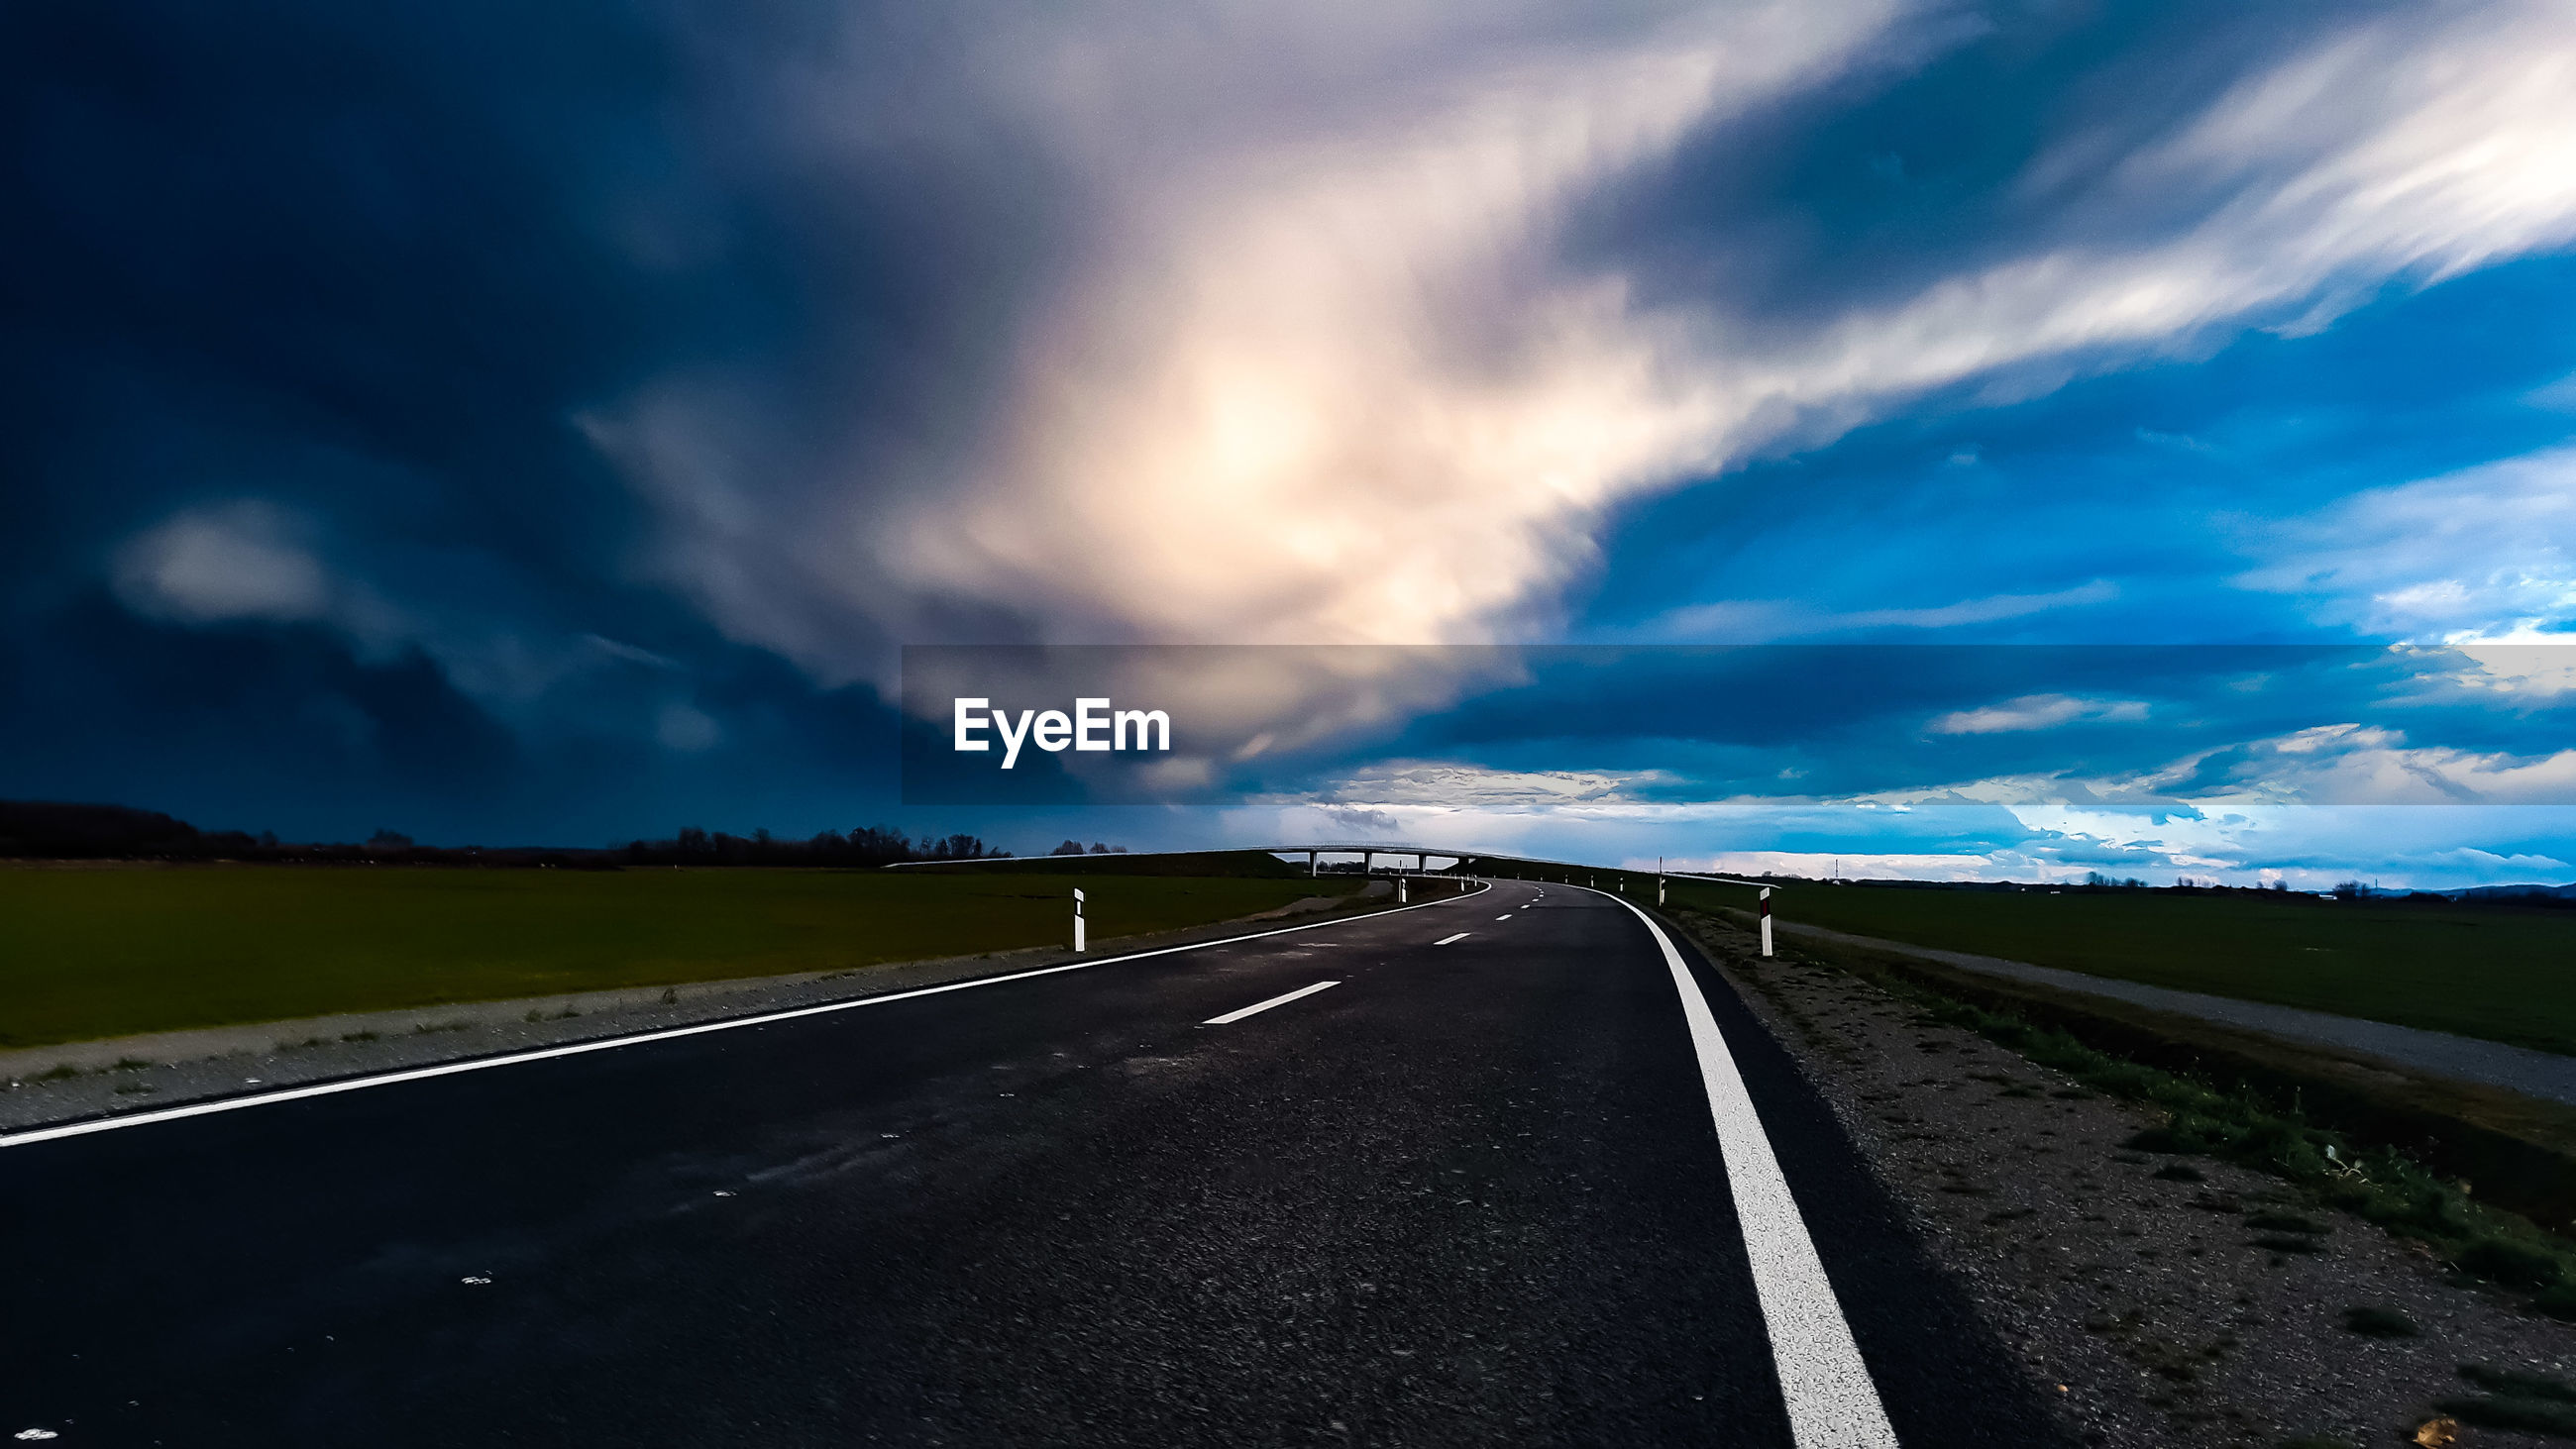 Empty road along countryside landscape against storm clouds